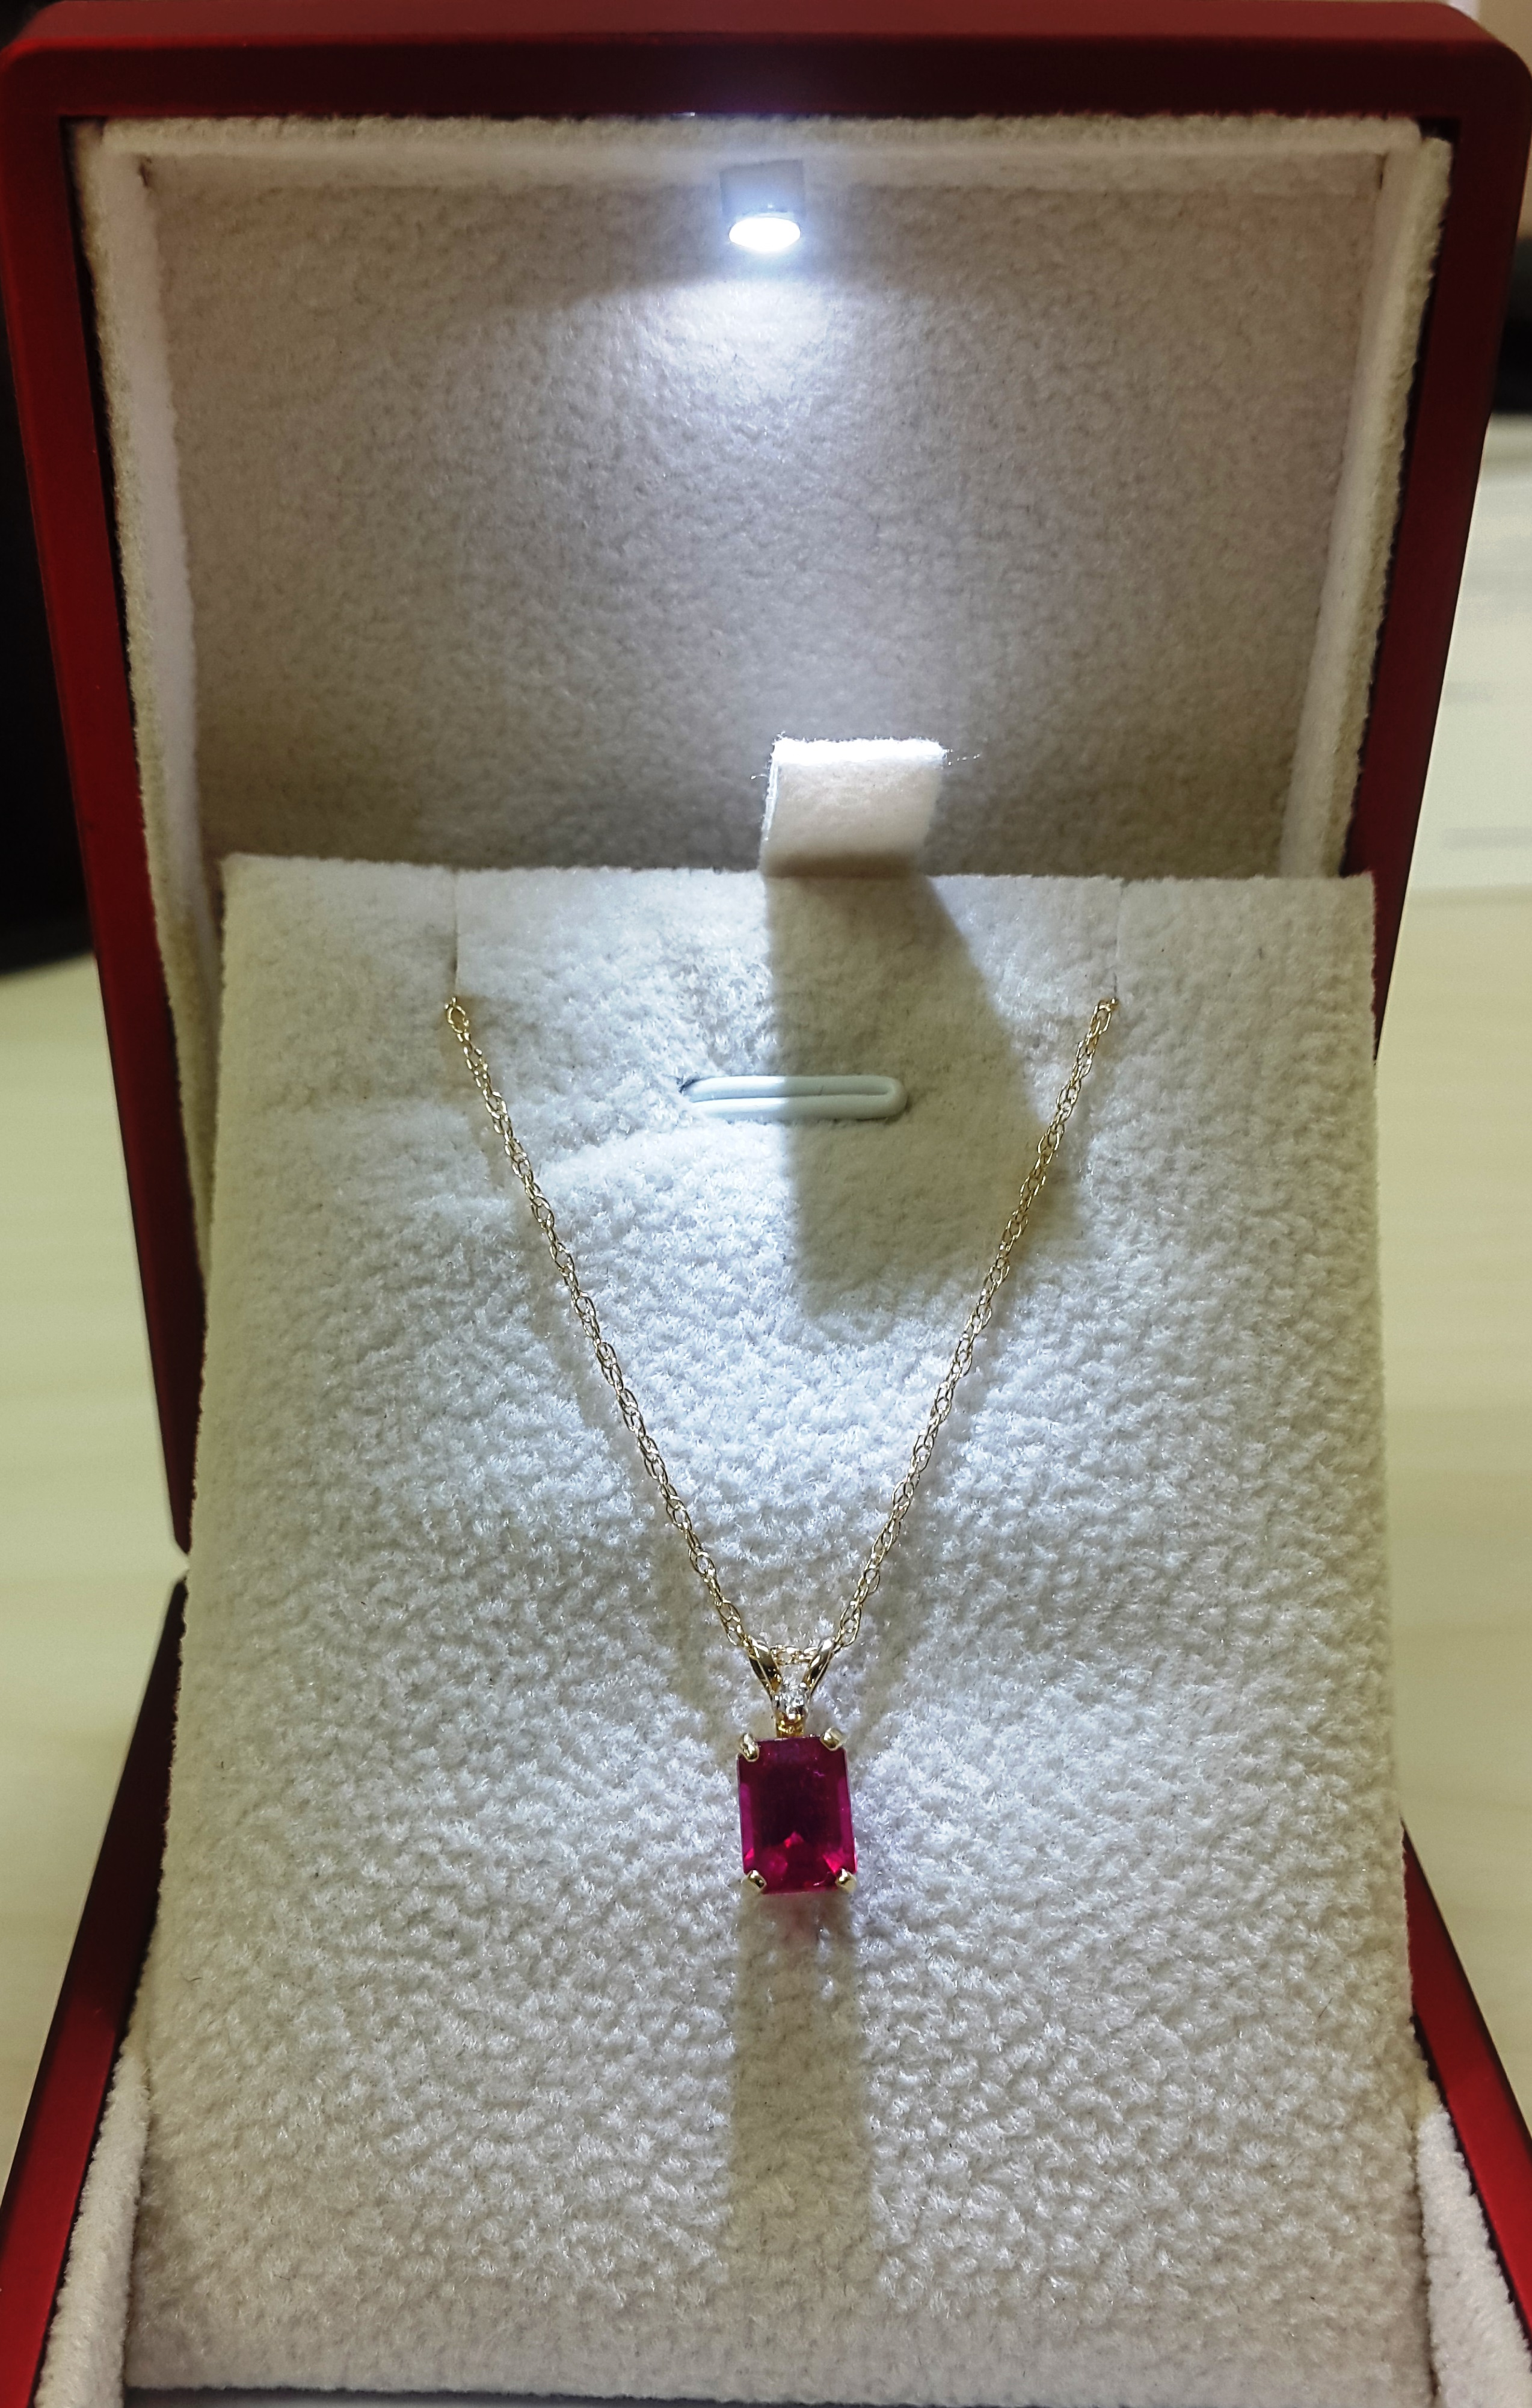 Classic 1 Carat Emerald Shaped Natural Ruby with 0.01 Ctw Solitaire Diamond Necklace In 14K Yellow Gold by Diamond Princess